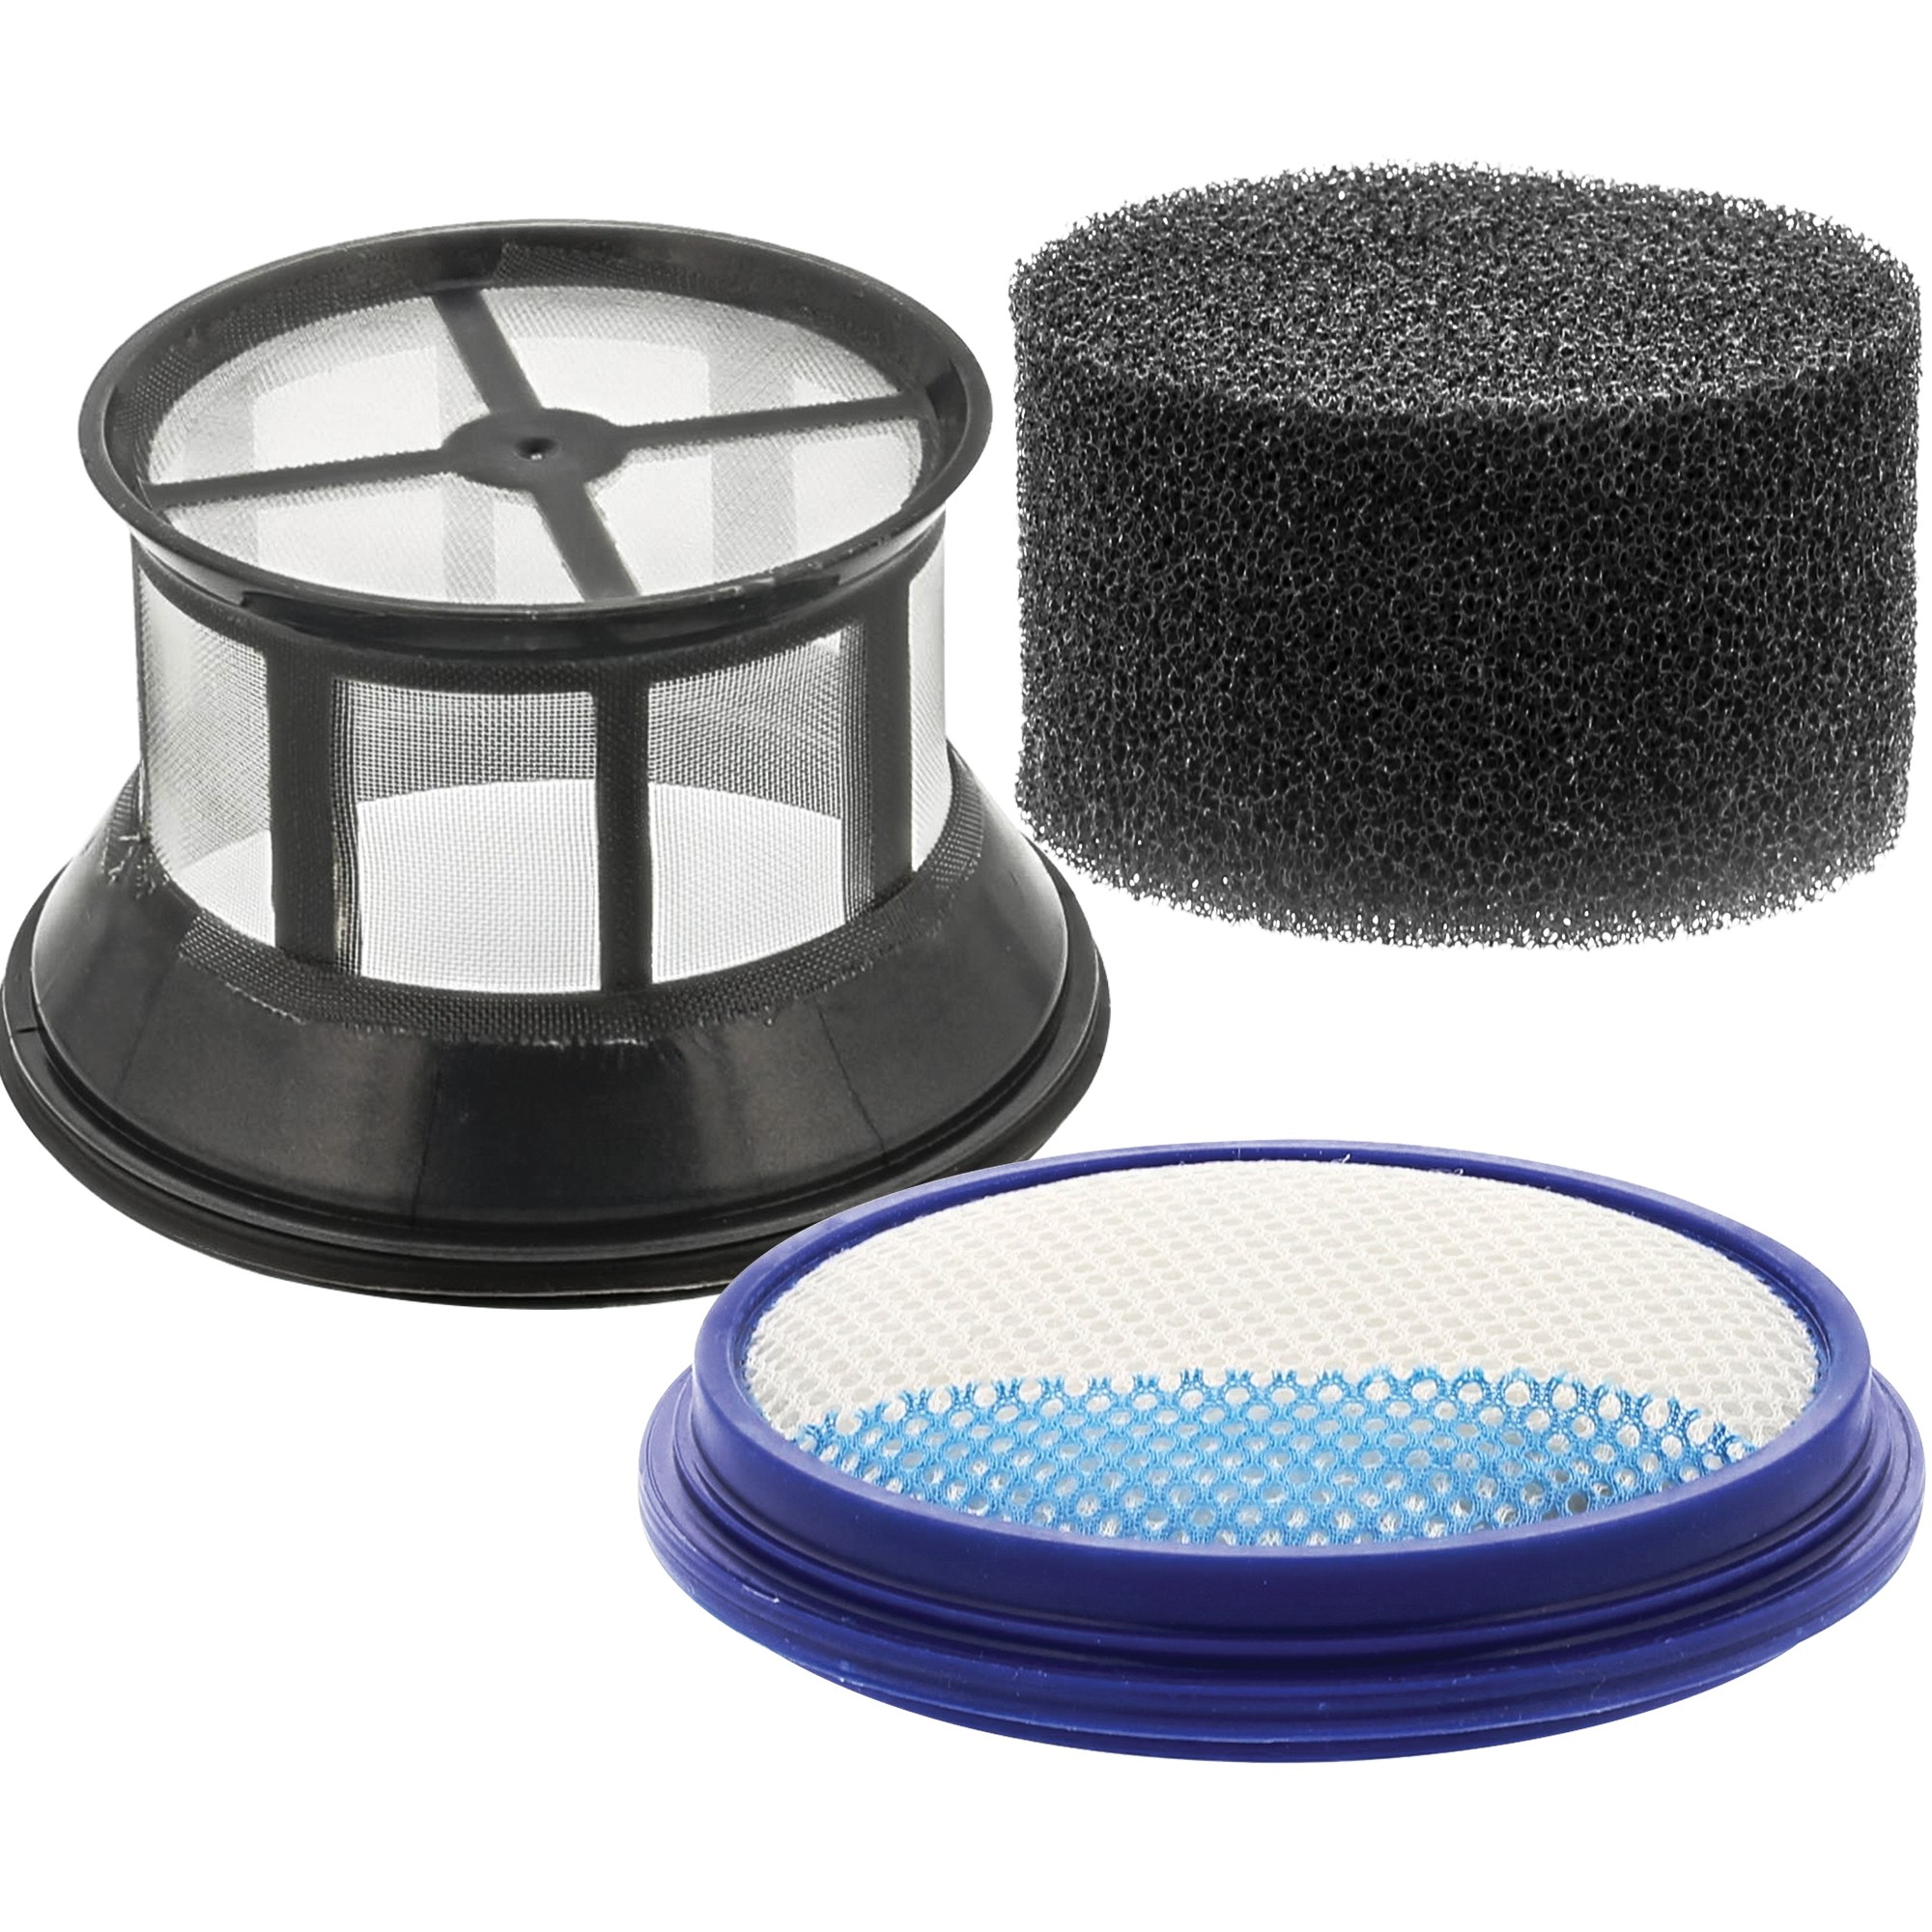 Vax Cordless Blade Filter Pack​